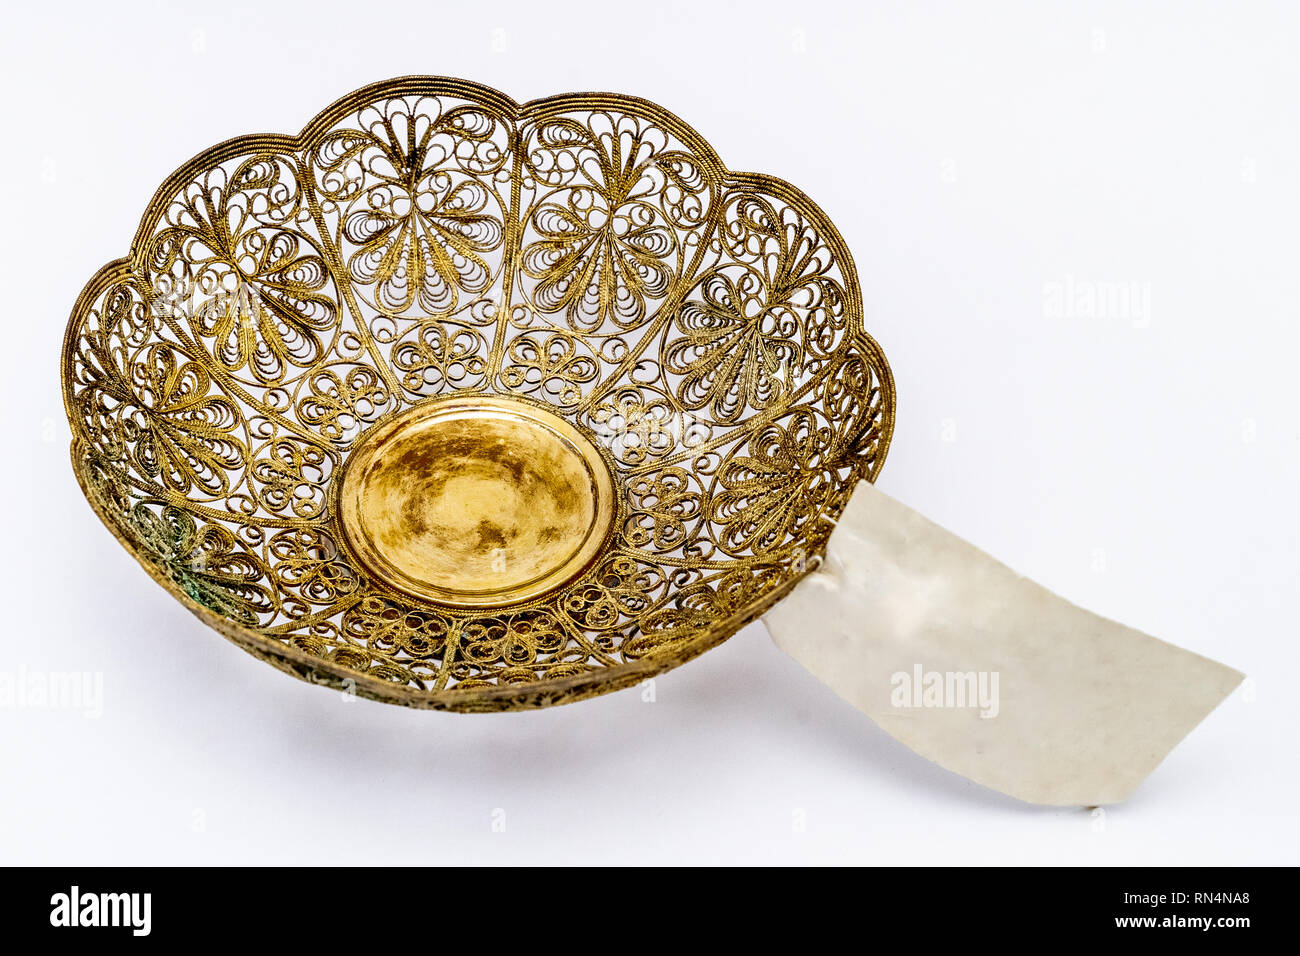 Vintage metal openwork gold vase with label on a white background. Top view - Stock Image